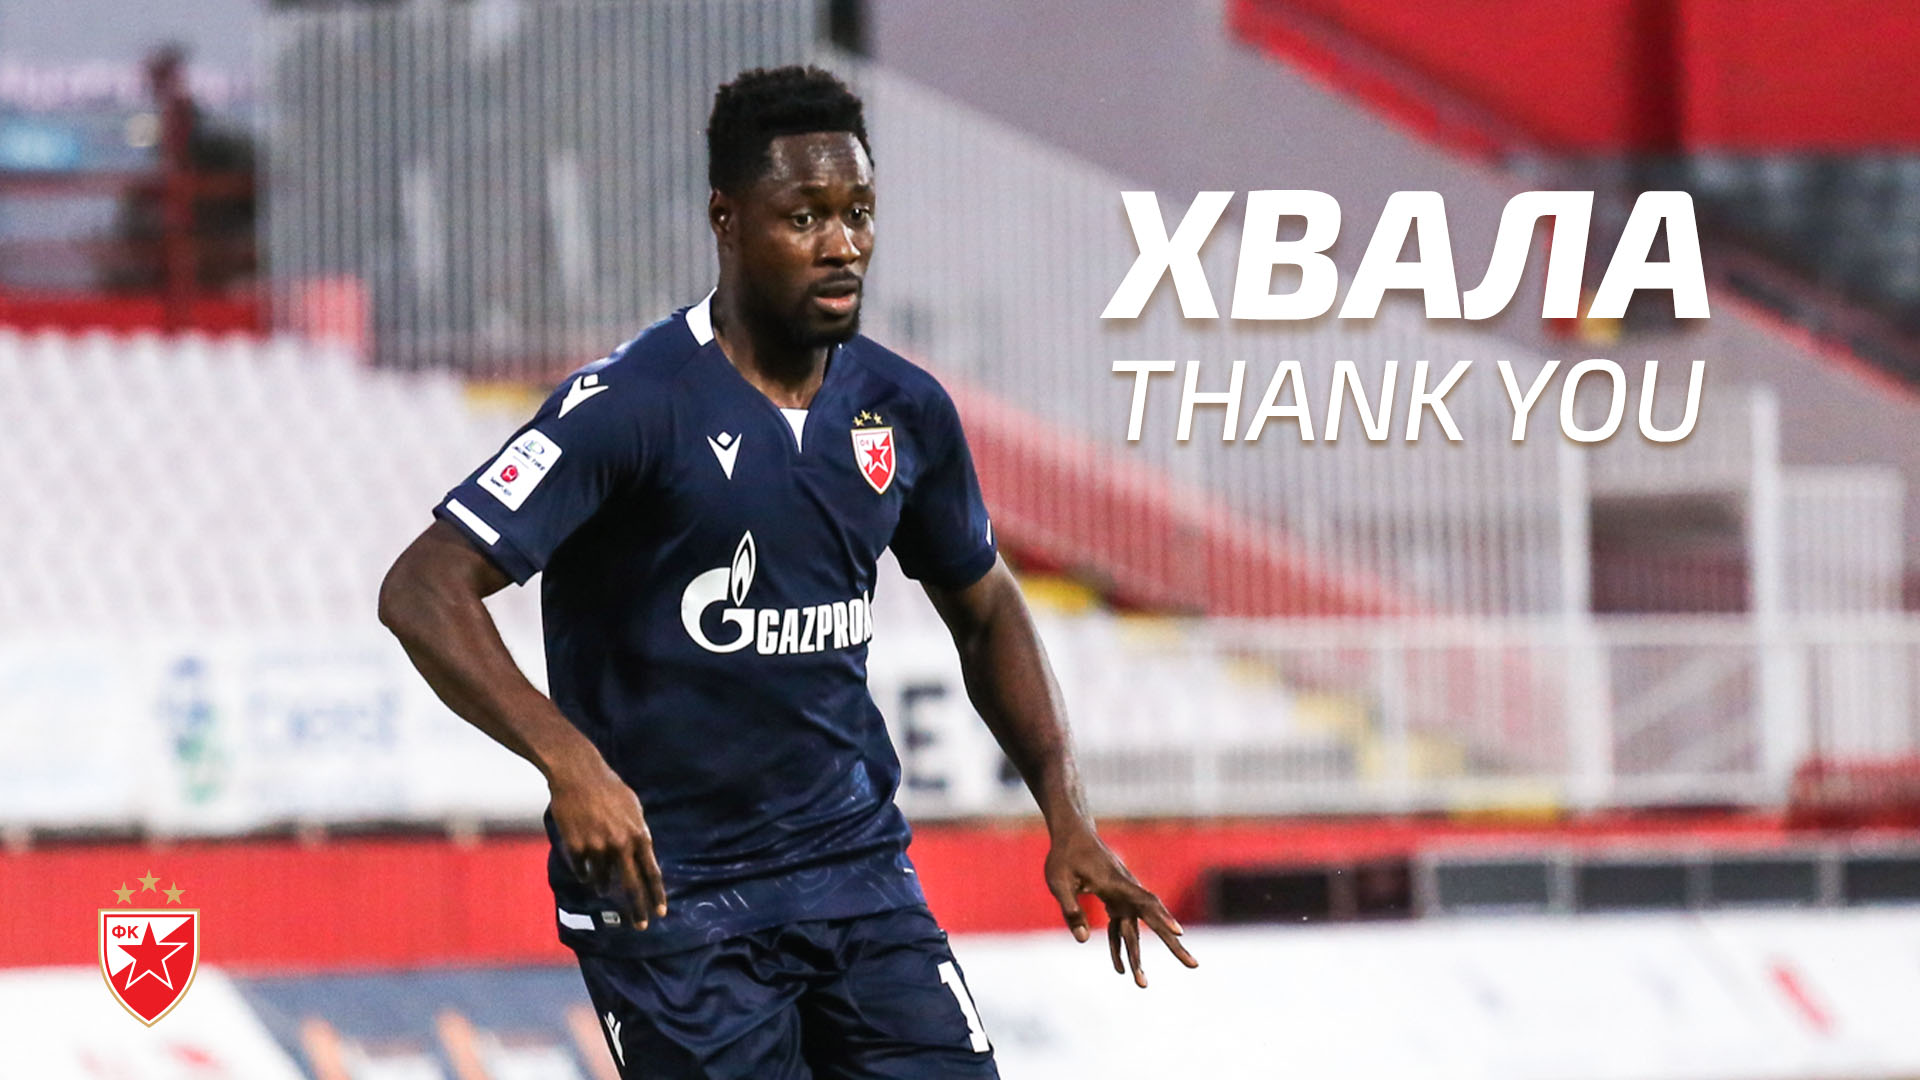 Red Star Belgrade extend best wishes to Richmond Boakye Yiadom after leaving club